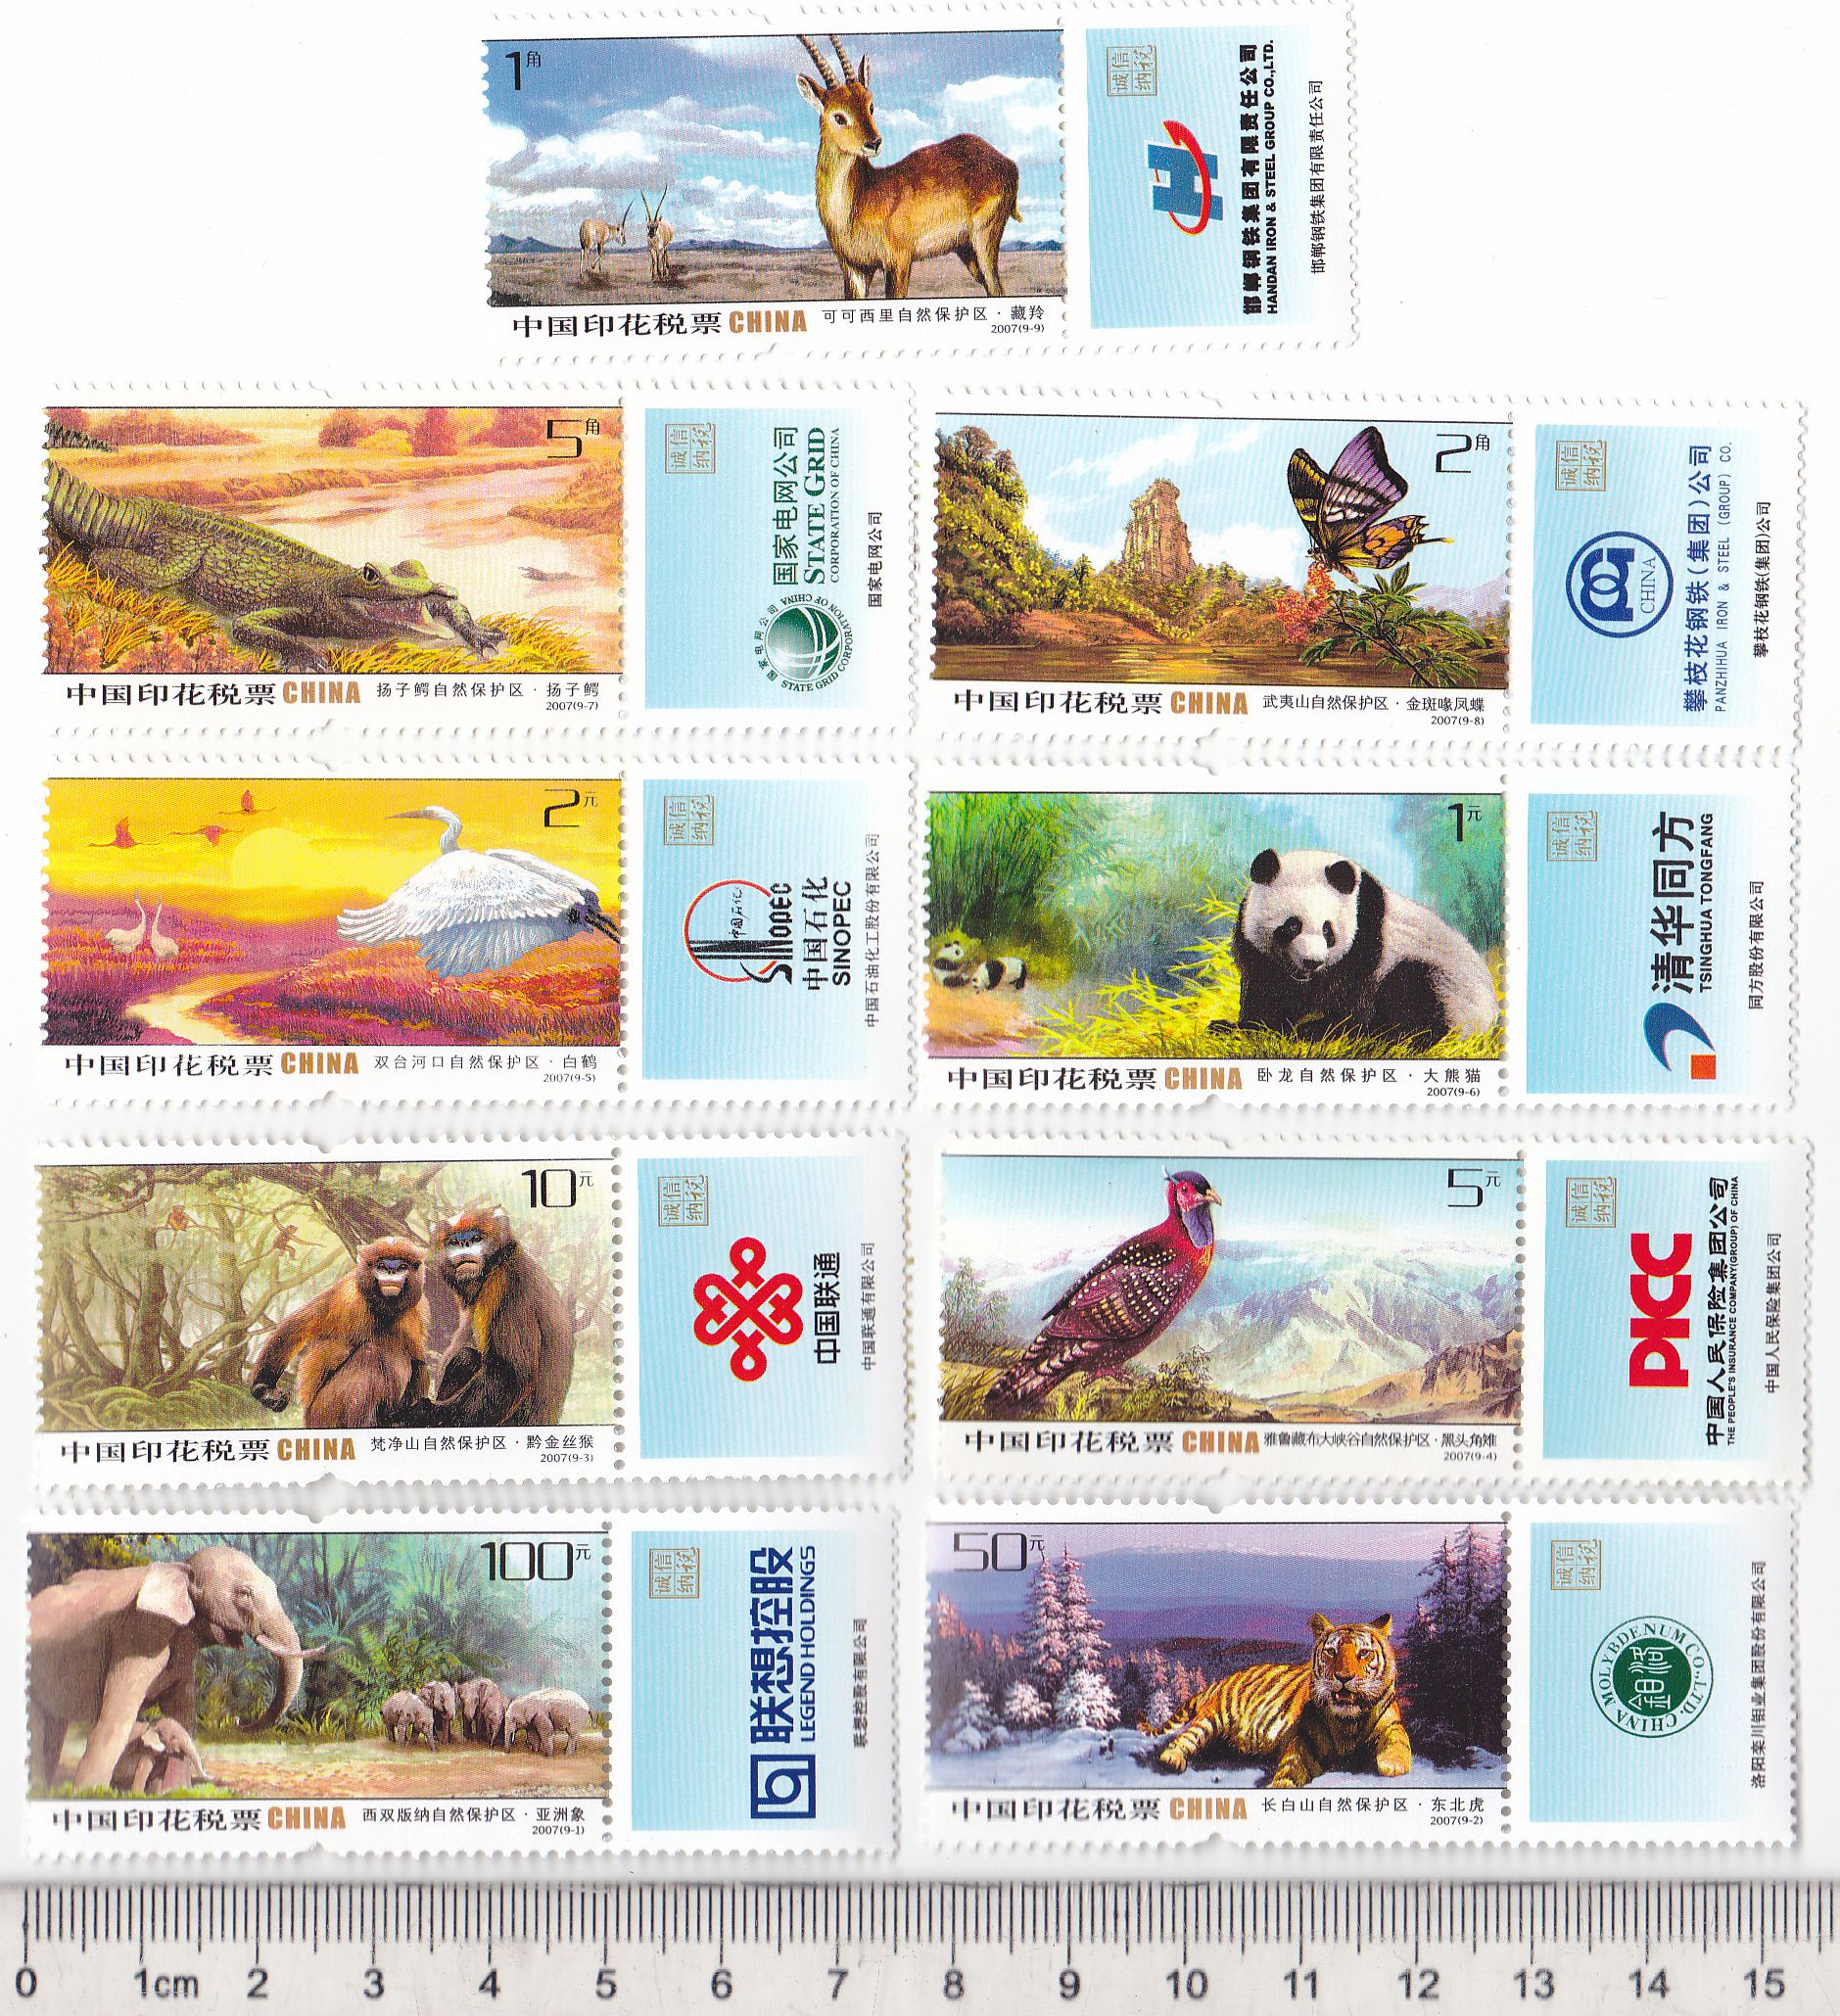 R2220, P.R.China Revenue Stamps, Full set 9 pcs, 2007 Wild Animals